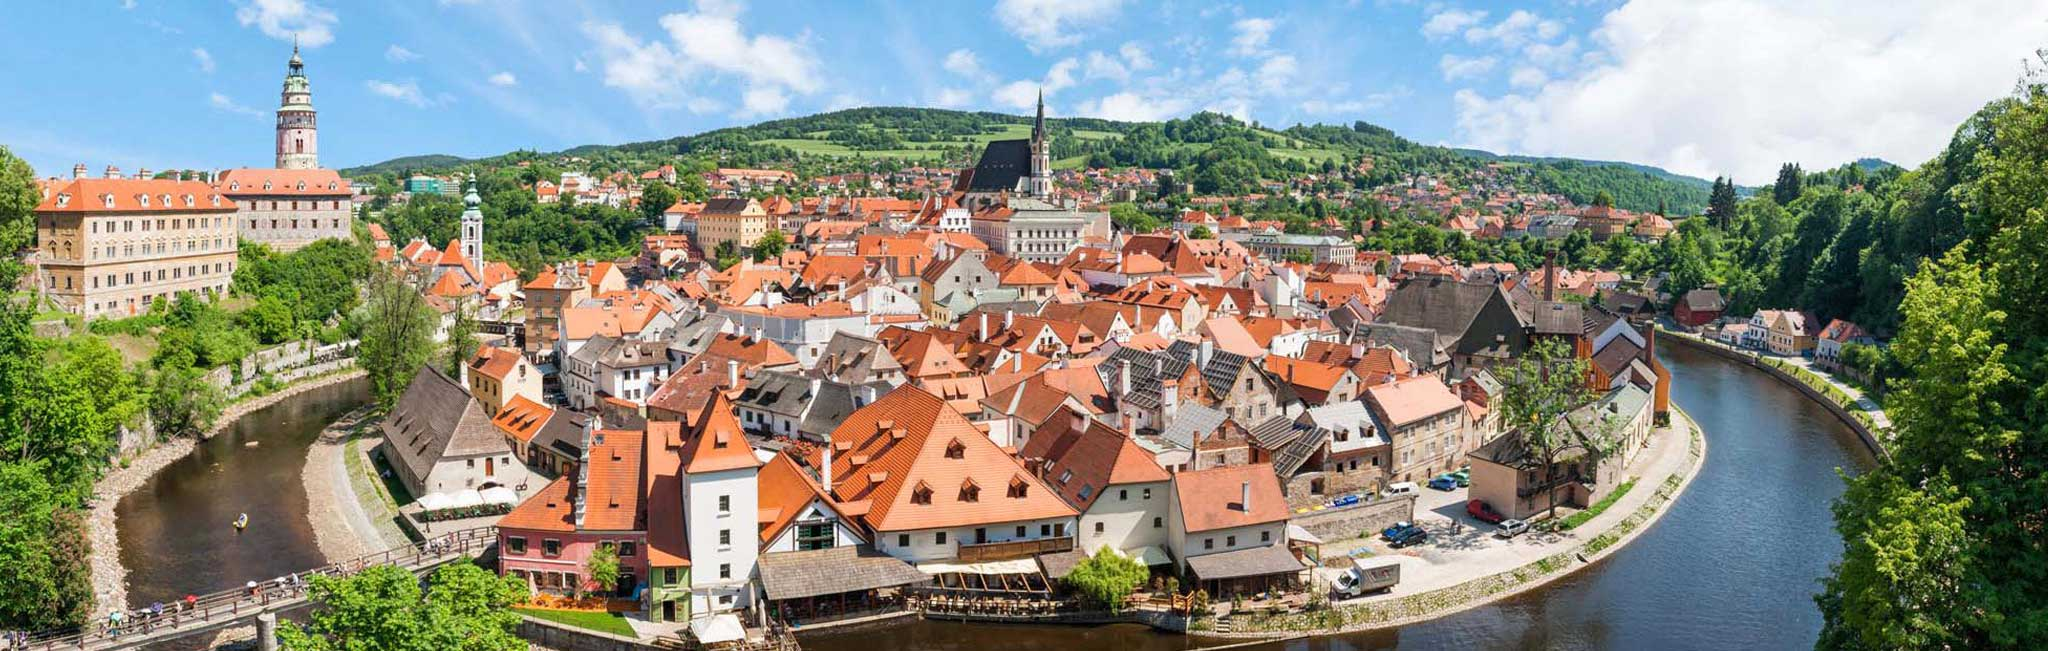 Czech Republic Tours - Cesky Krumlov castle and church of St. Vitius